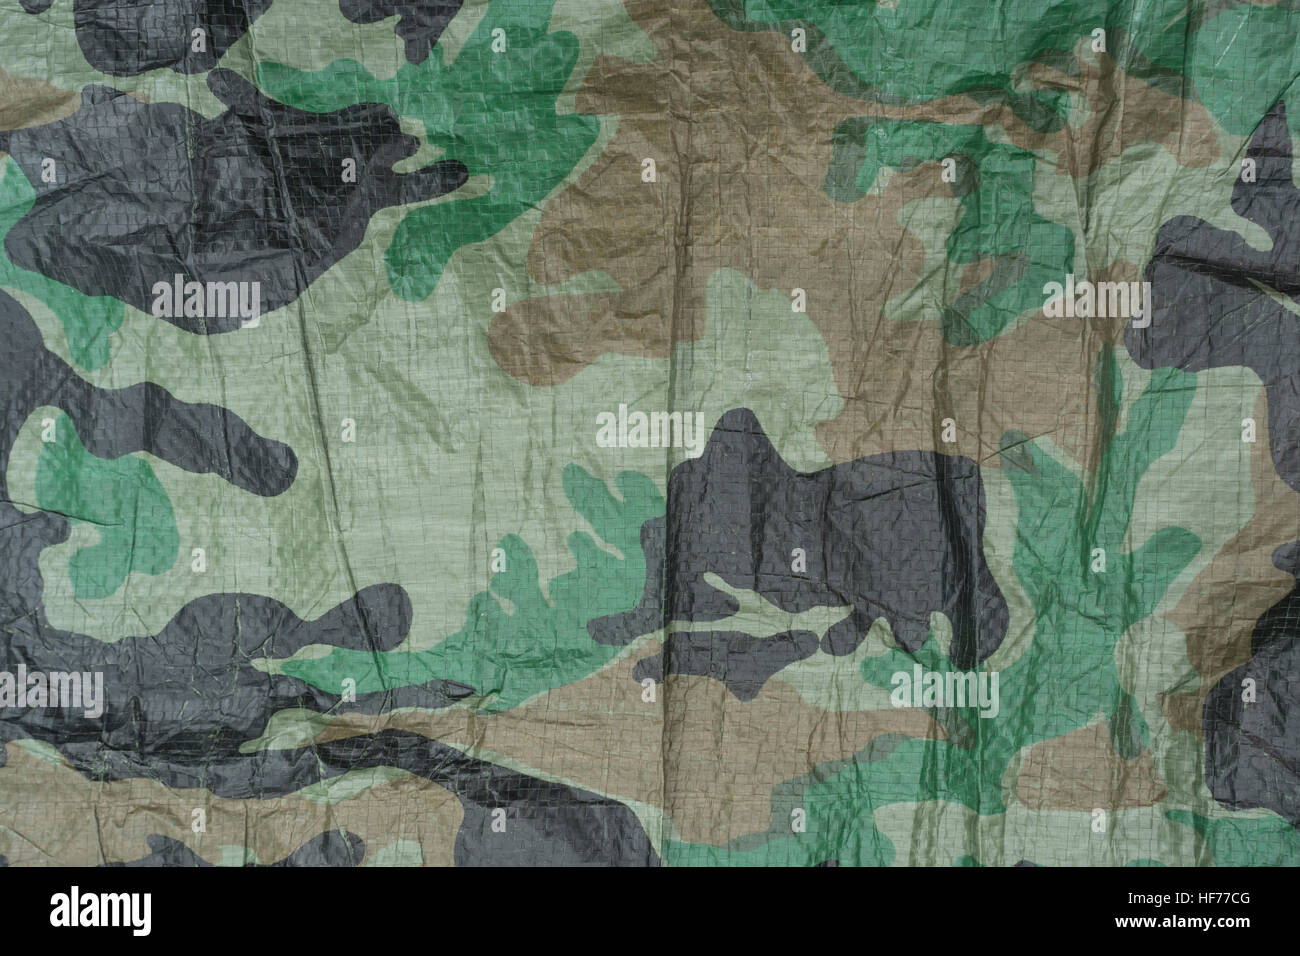 Section of camouflage ground sheet material. - Stock Image